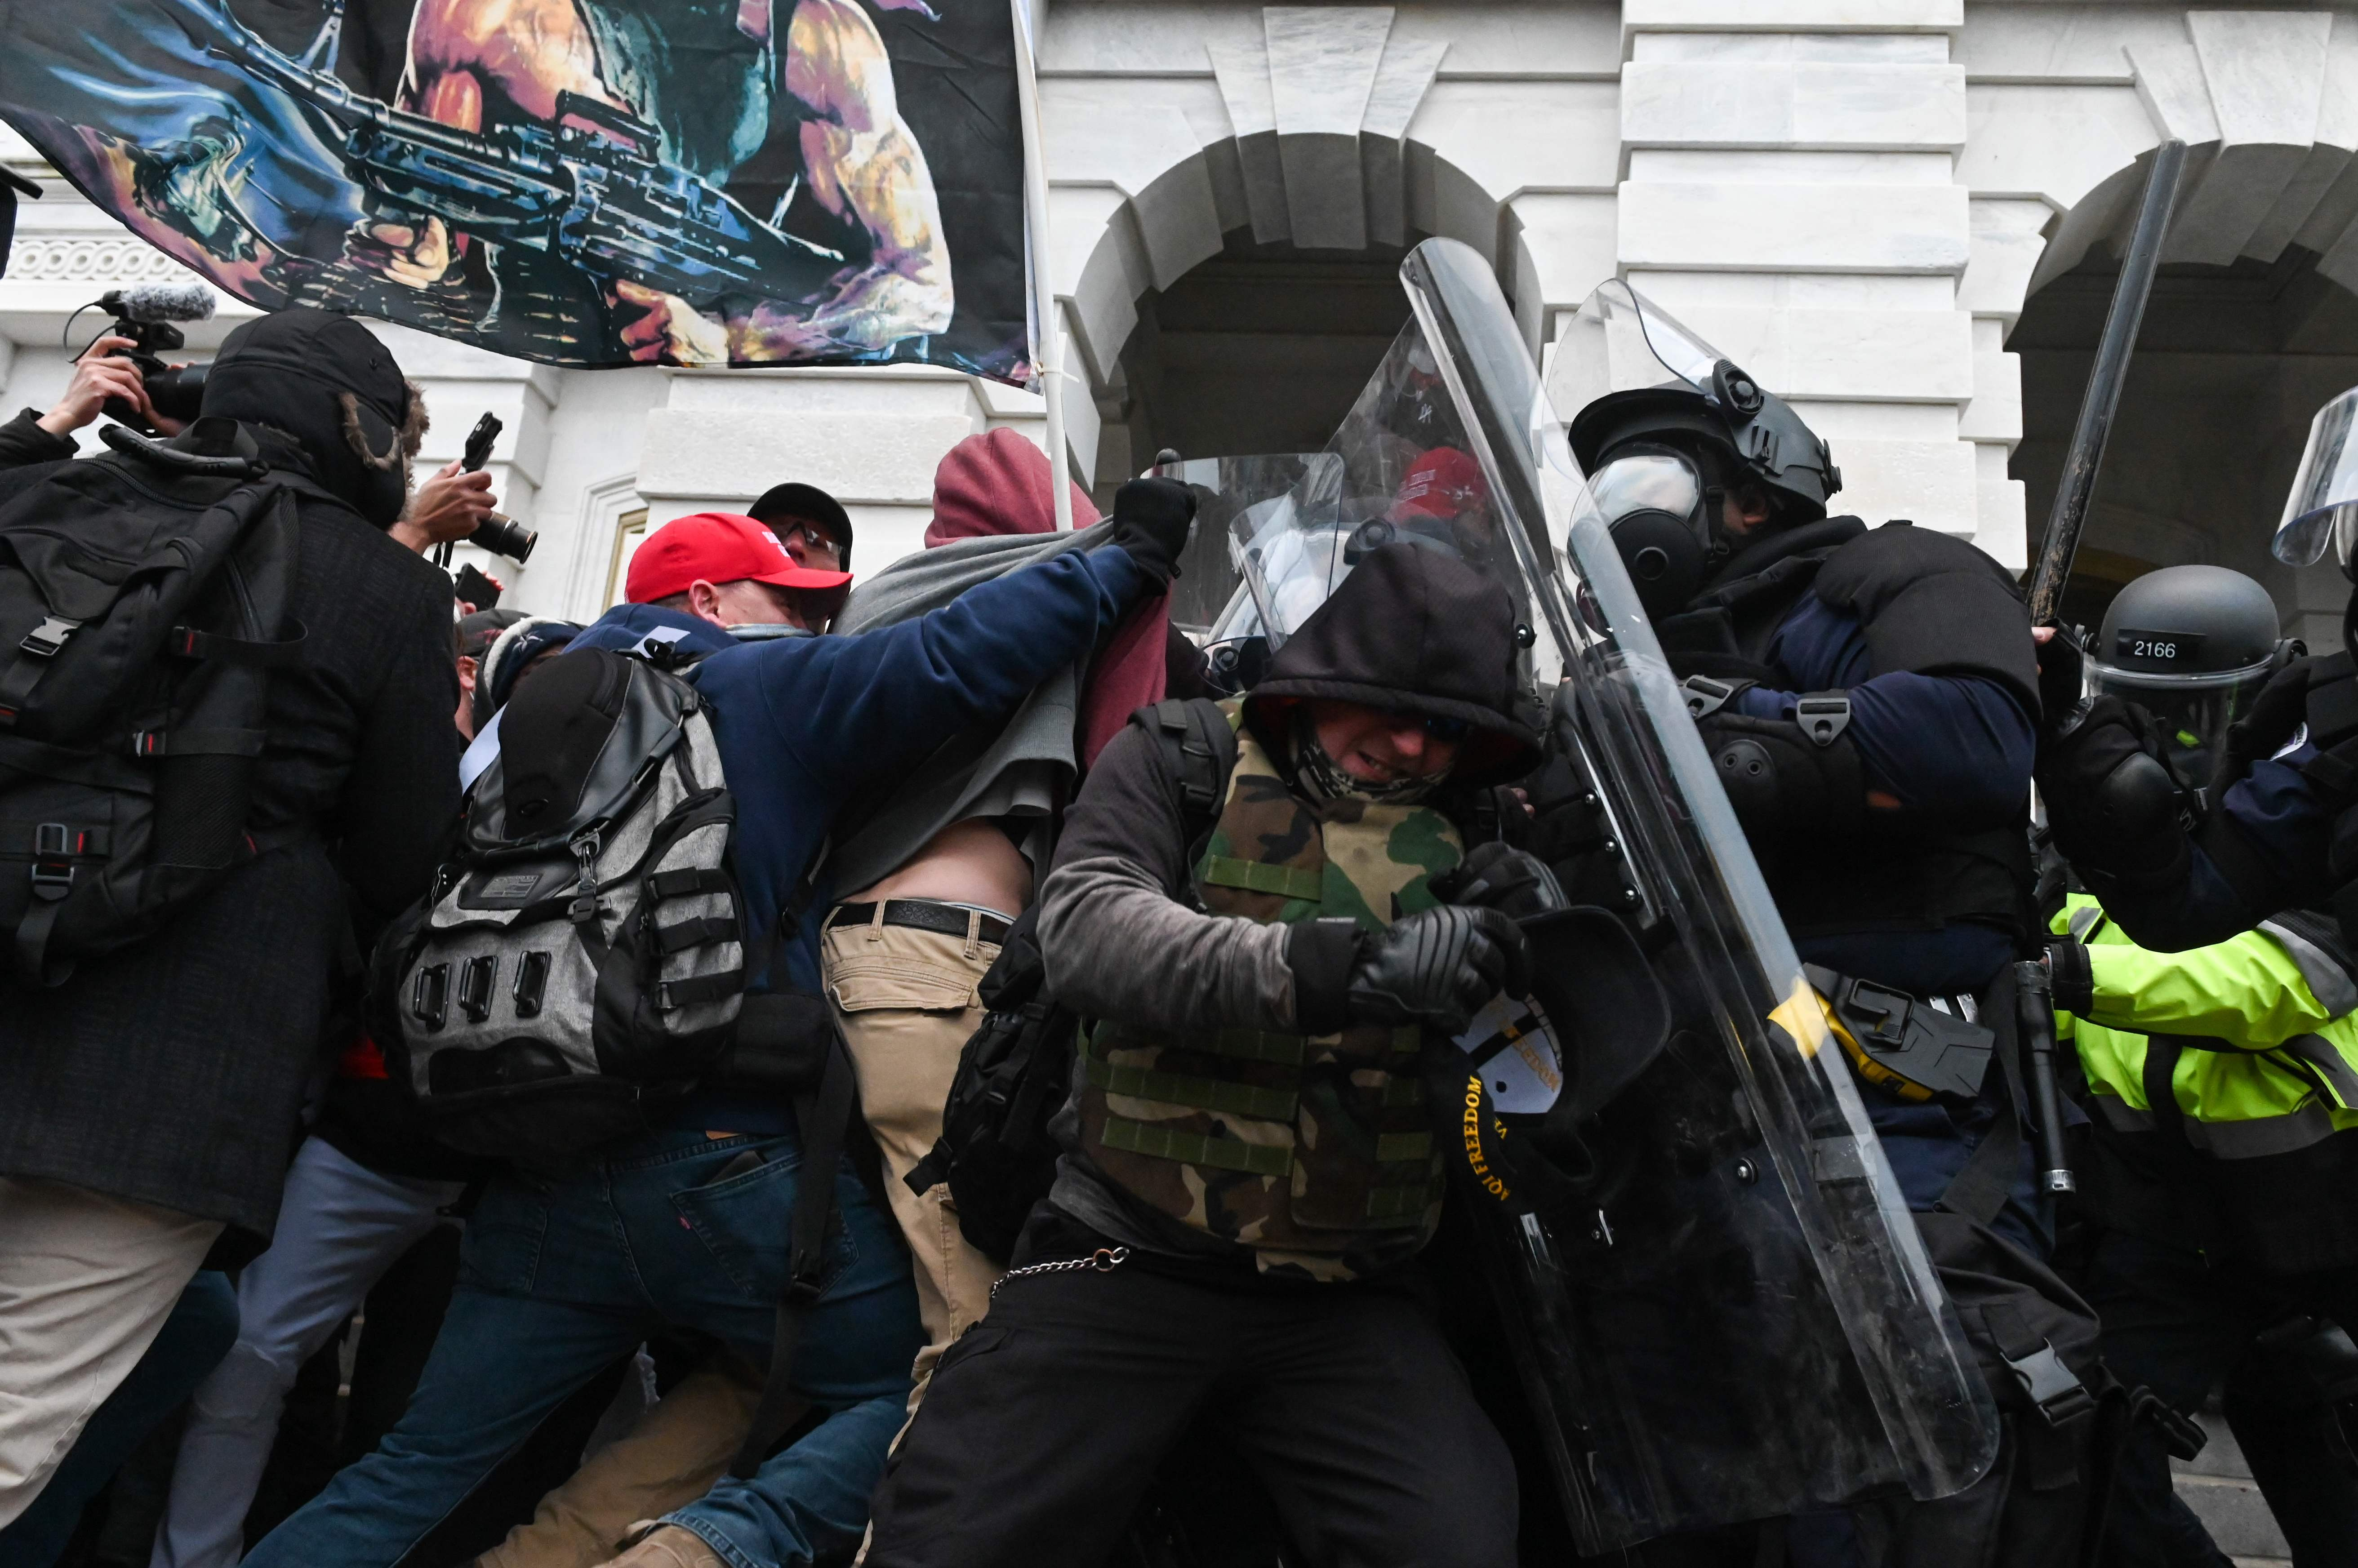 DOJ should investigate social media platform Gab and its CEO over Capitol riots, according to anti-hate group